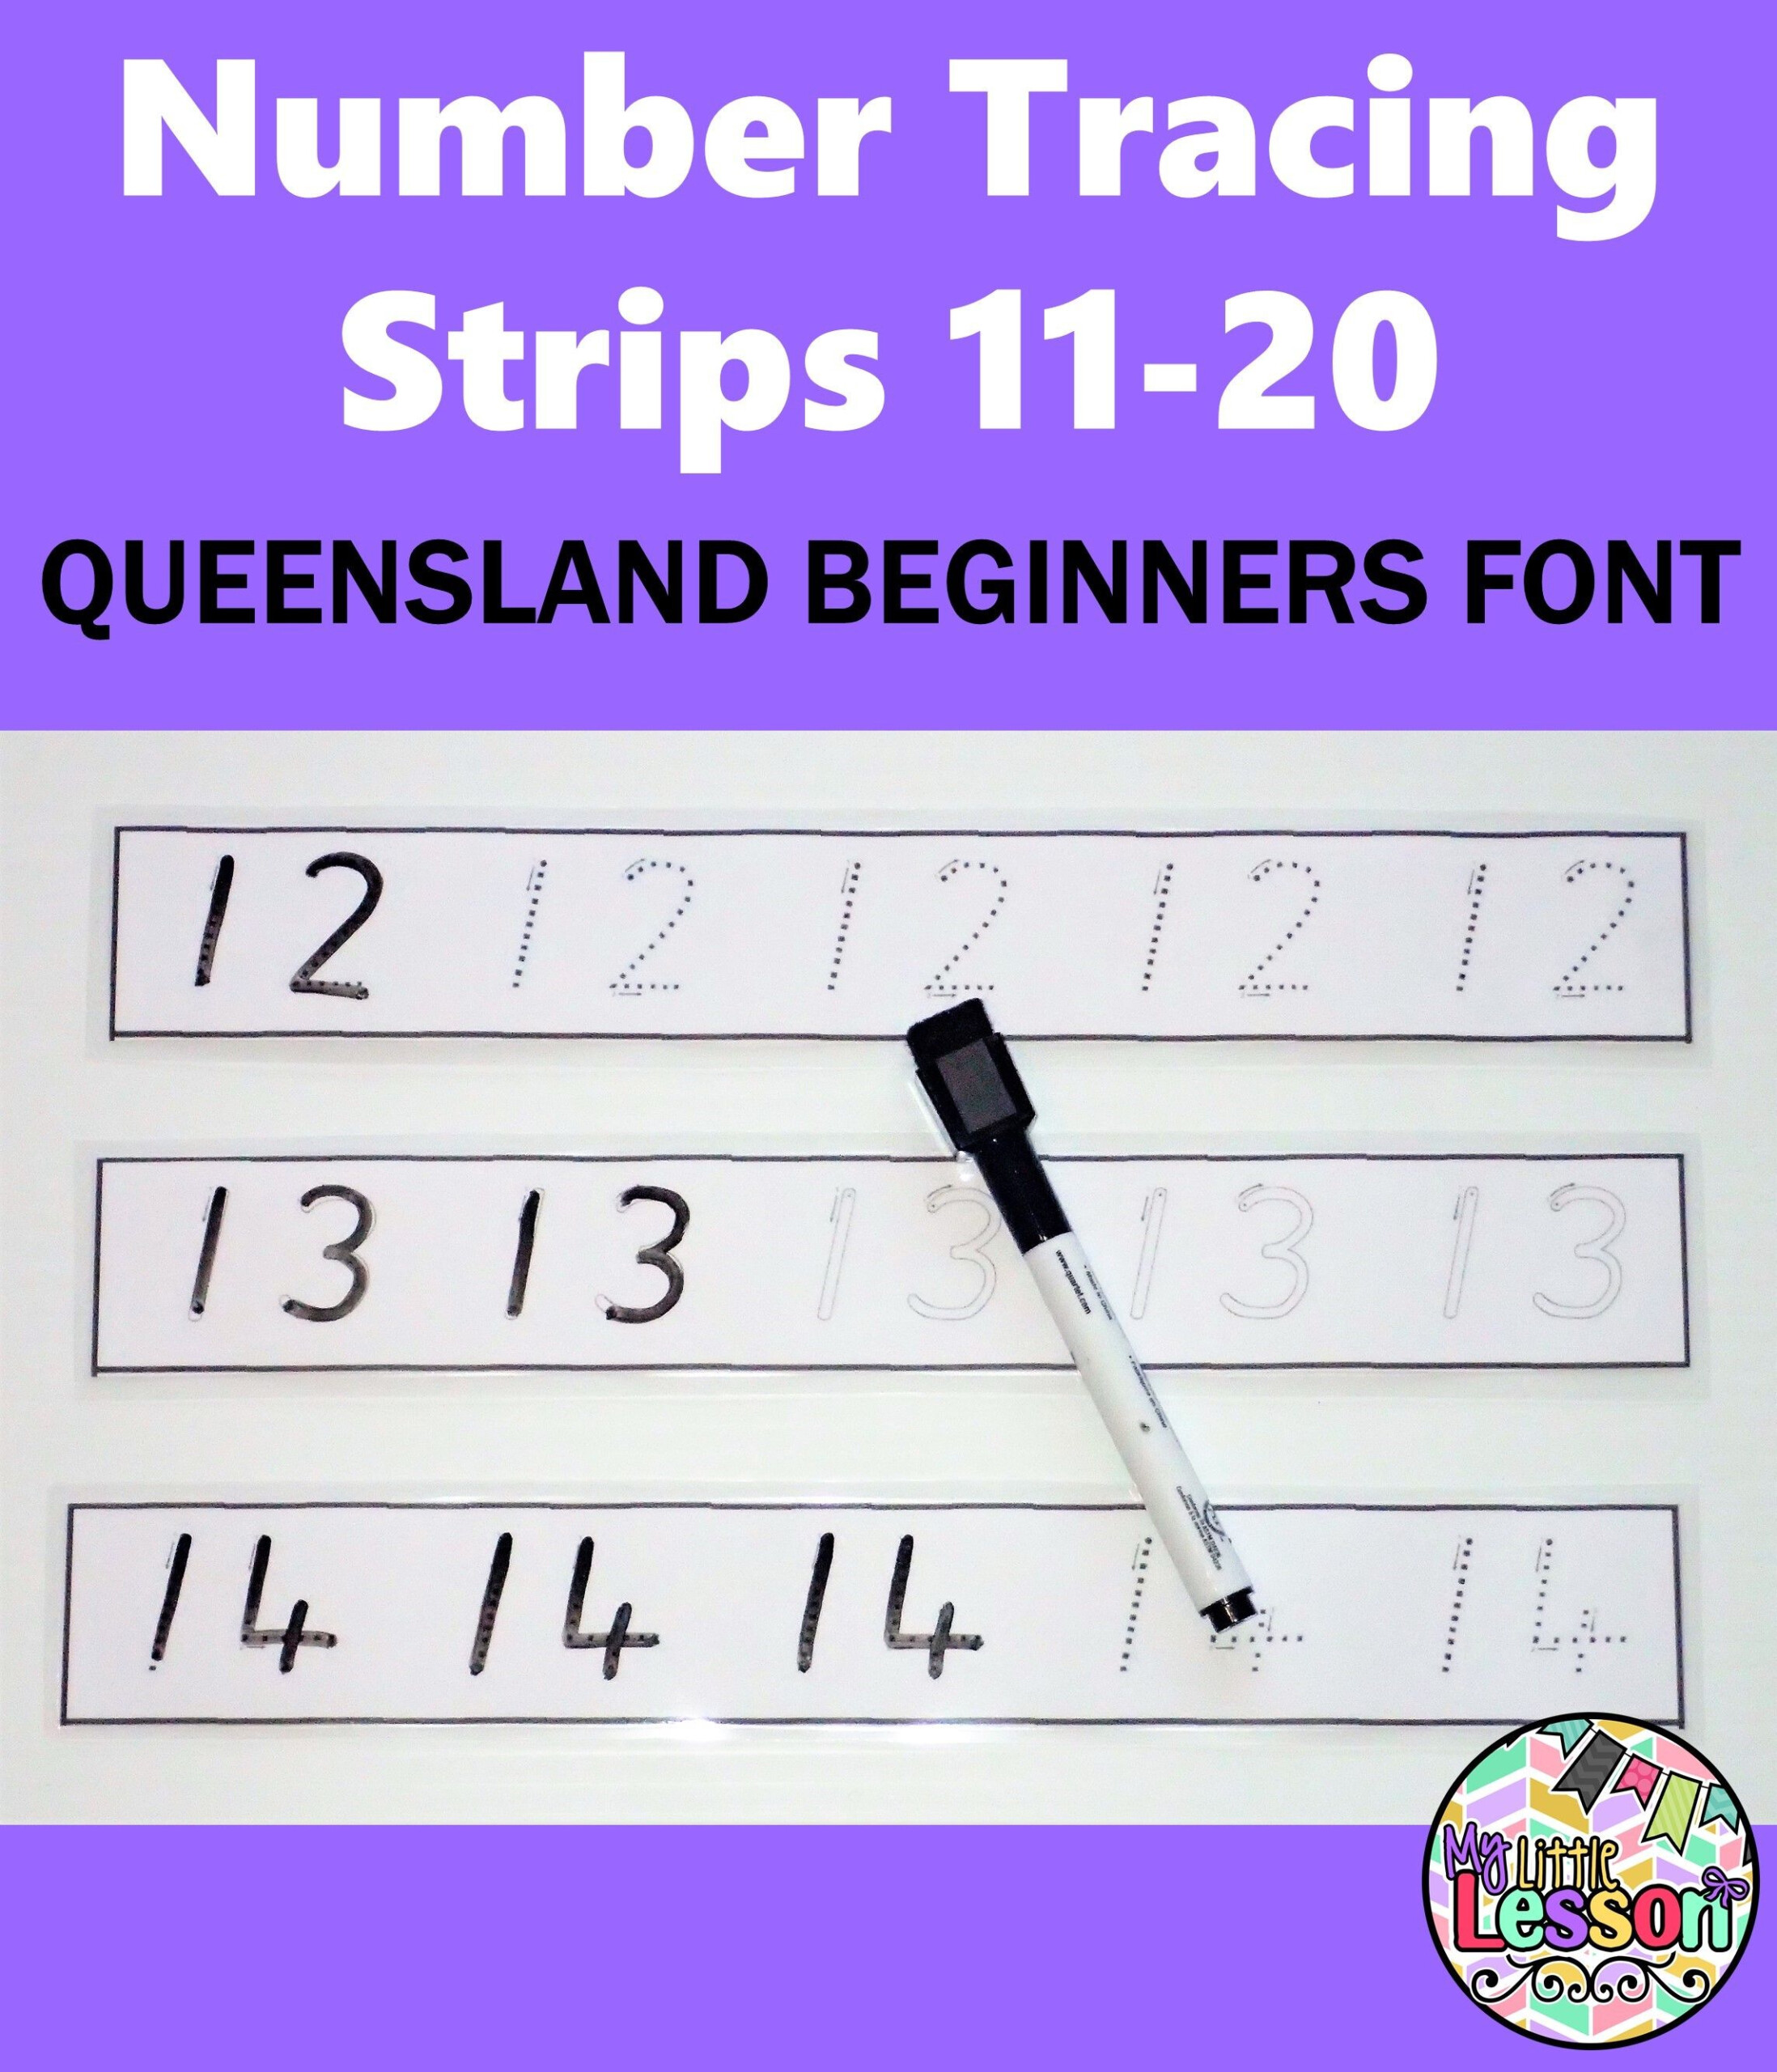 Number Tracing Strips 11-20 Qld Beginners Font | Teaching